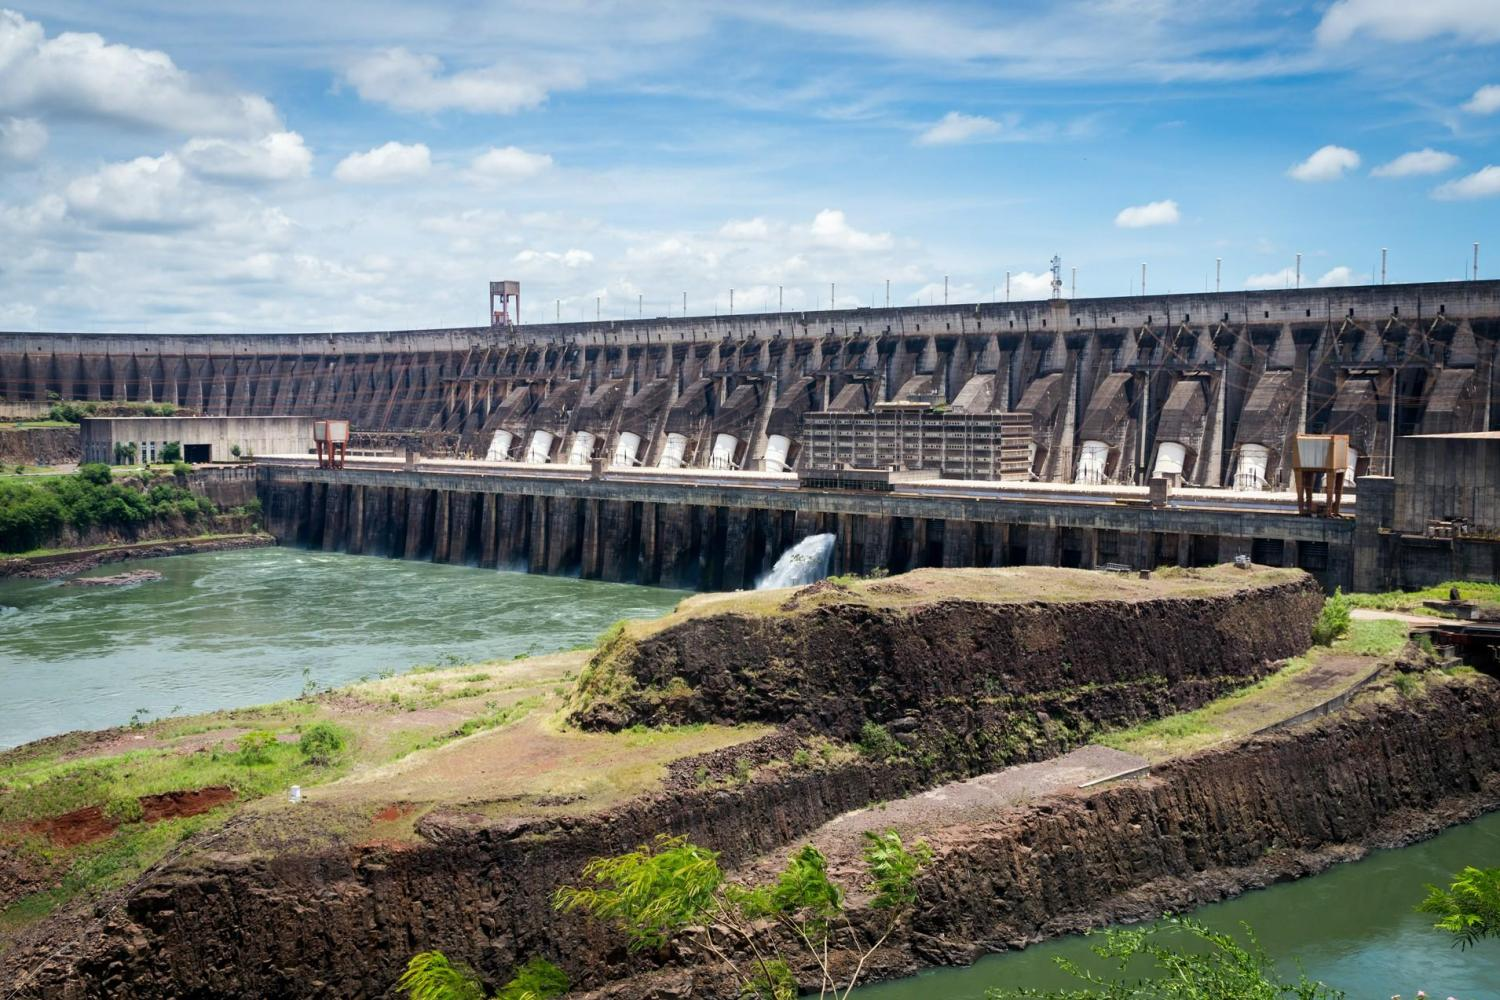 Check out the powerful Itaipu hydropower